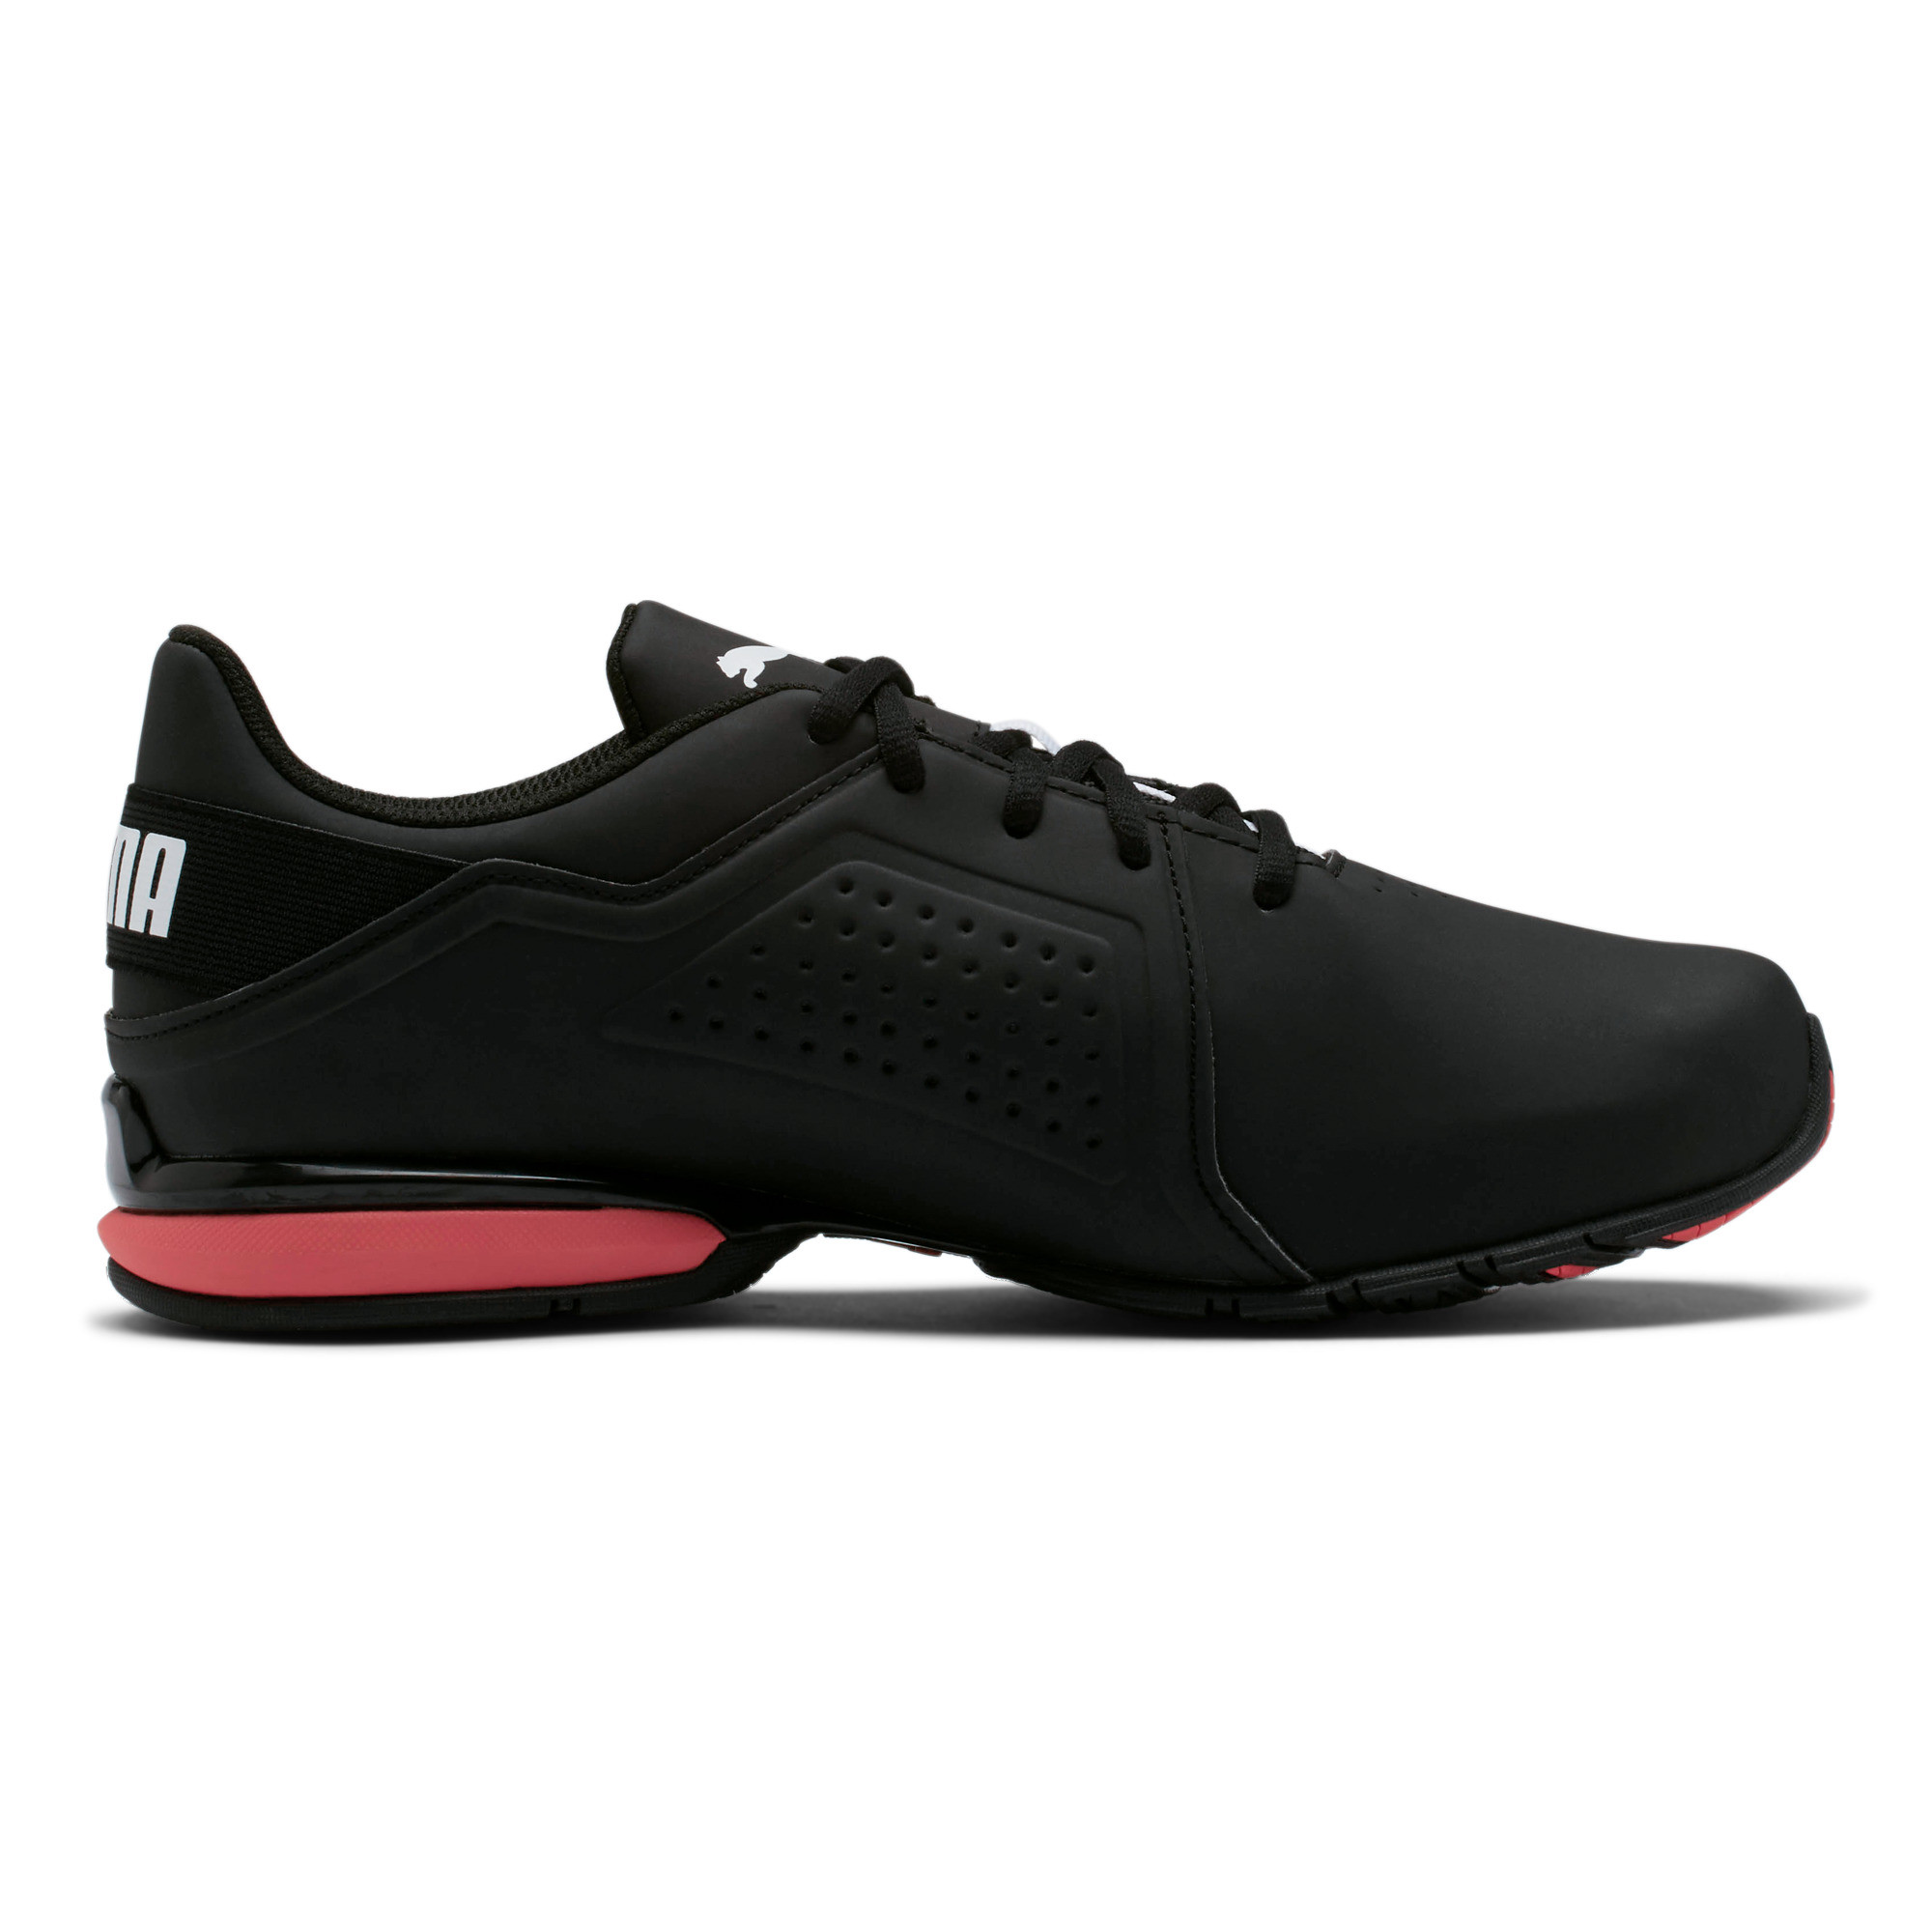 thumbnail 6 - PUMA Men's Viz Runner Training Shoes